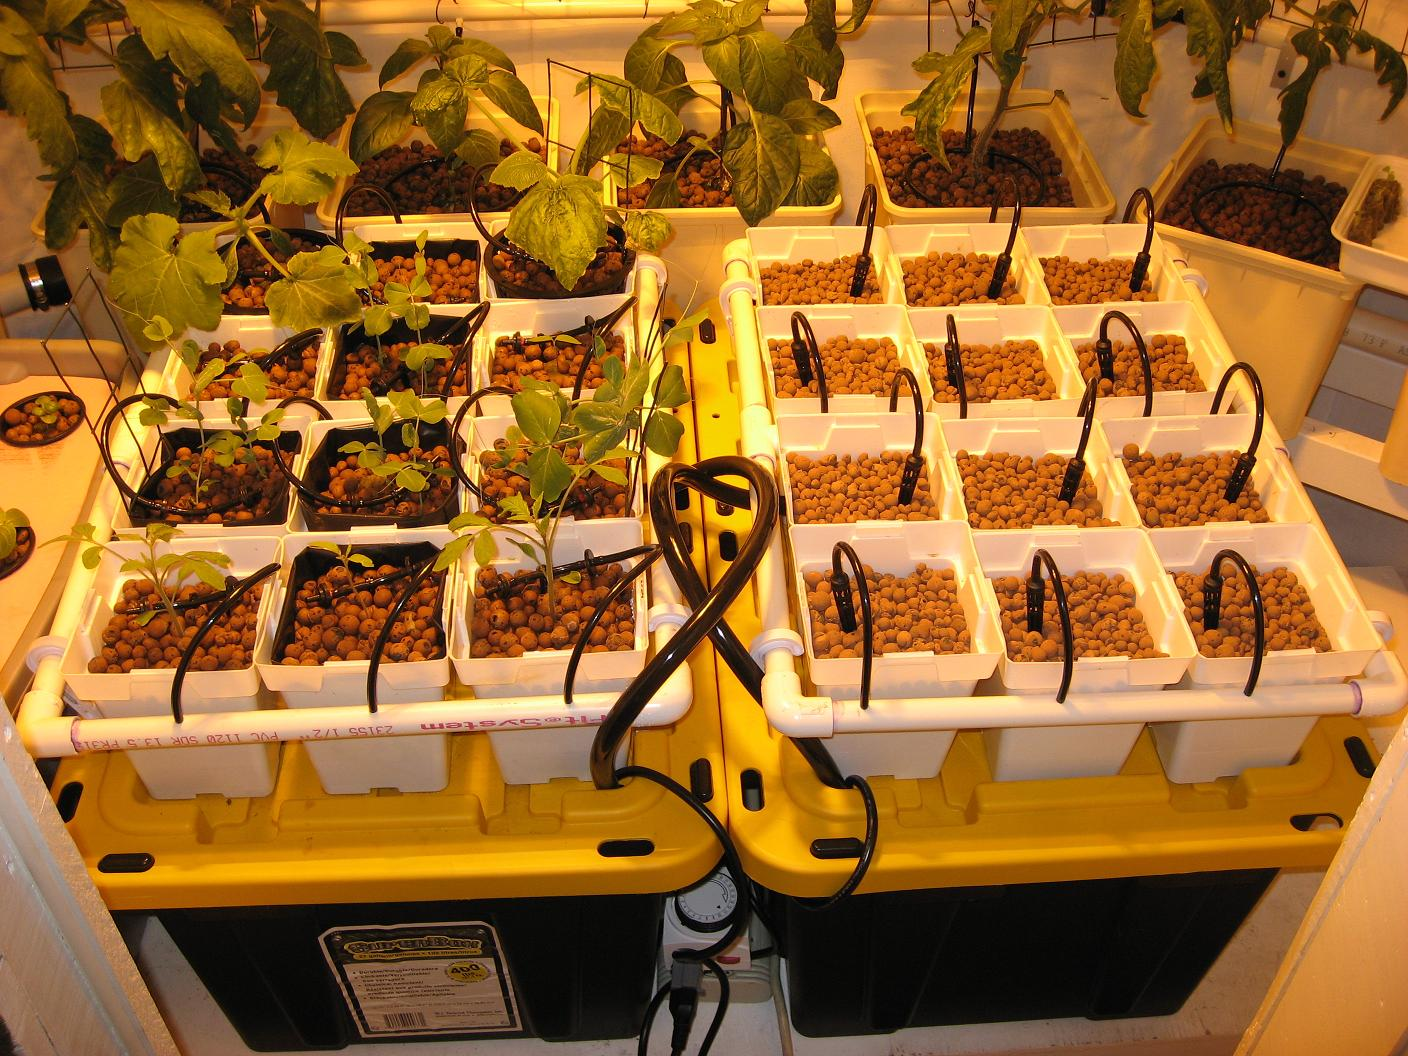 Hydroponic Drip Garden for Vegetables, Herbs or Flowers